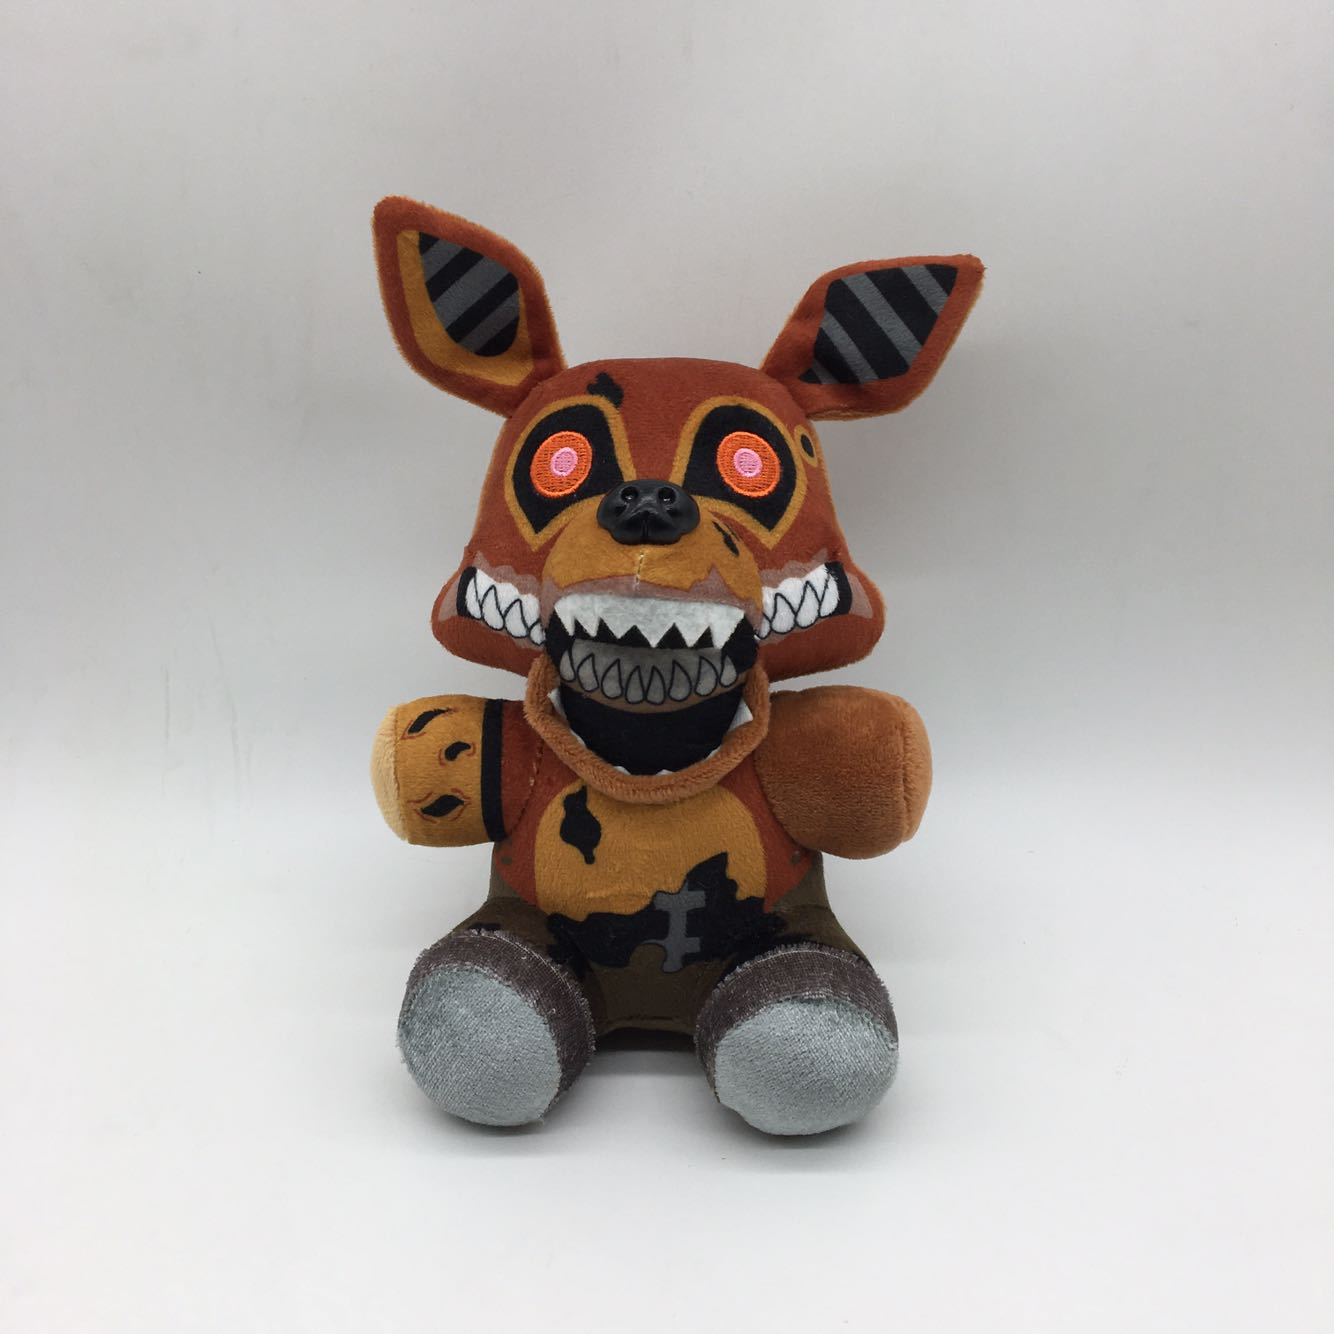 1pcs 18cm FNAF Five Nights At Freddy's Plush Toy Doll  Pizza Shop Plush Toys Soft Stuffed Toys Doll For Kids Children Gifts